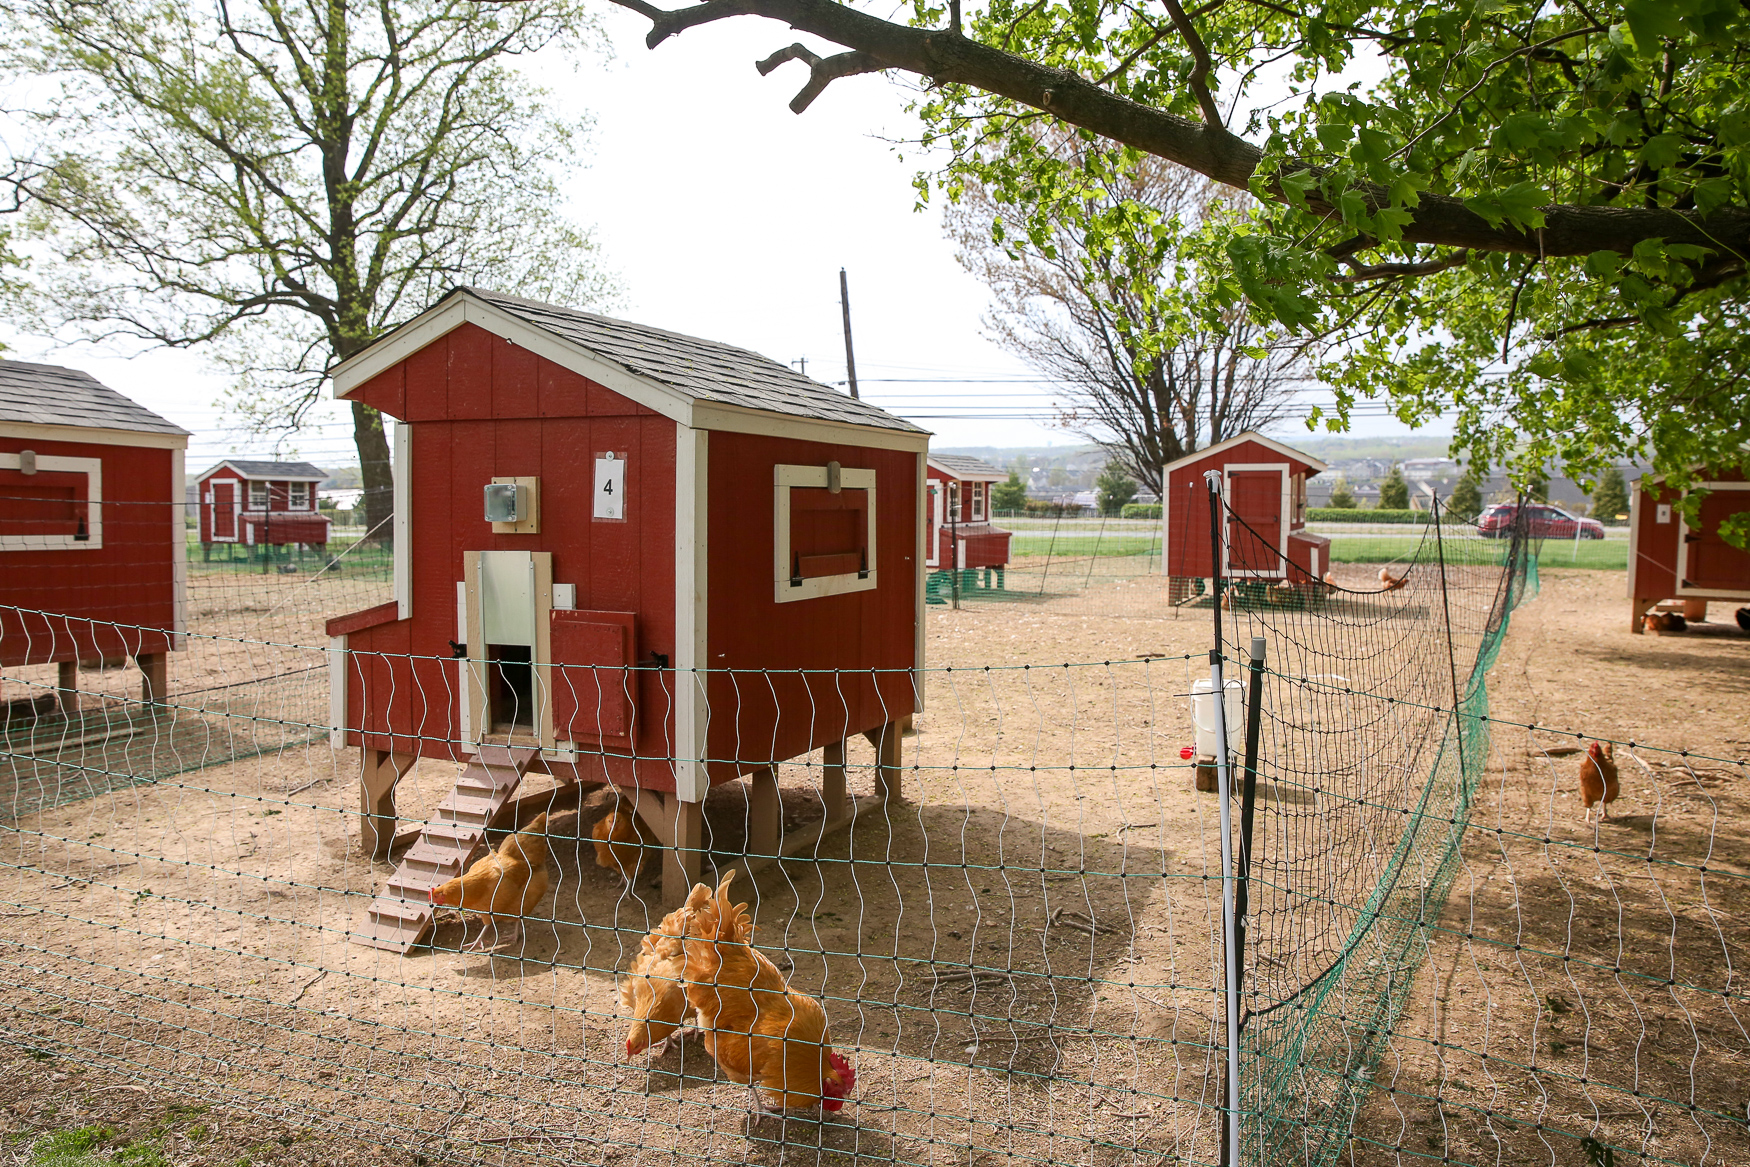 If you end up falling in love with your hens (or at least the steady supply of fresh eggs), the birds and the coop setups are available for purchase at the end of the rental period. (Image: Amanda Andrade-Rhoades/ DC Refined)